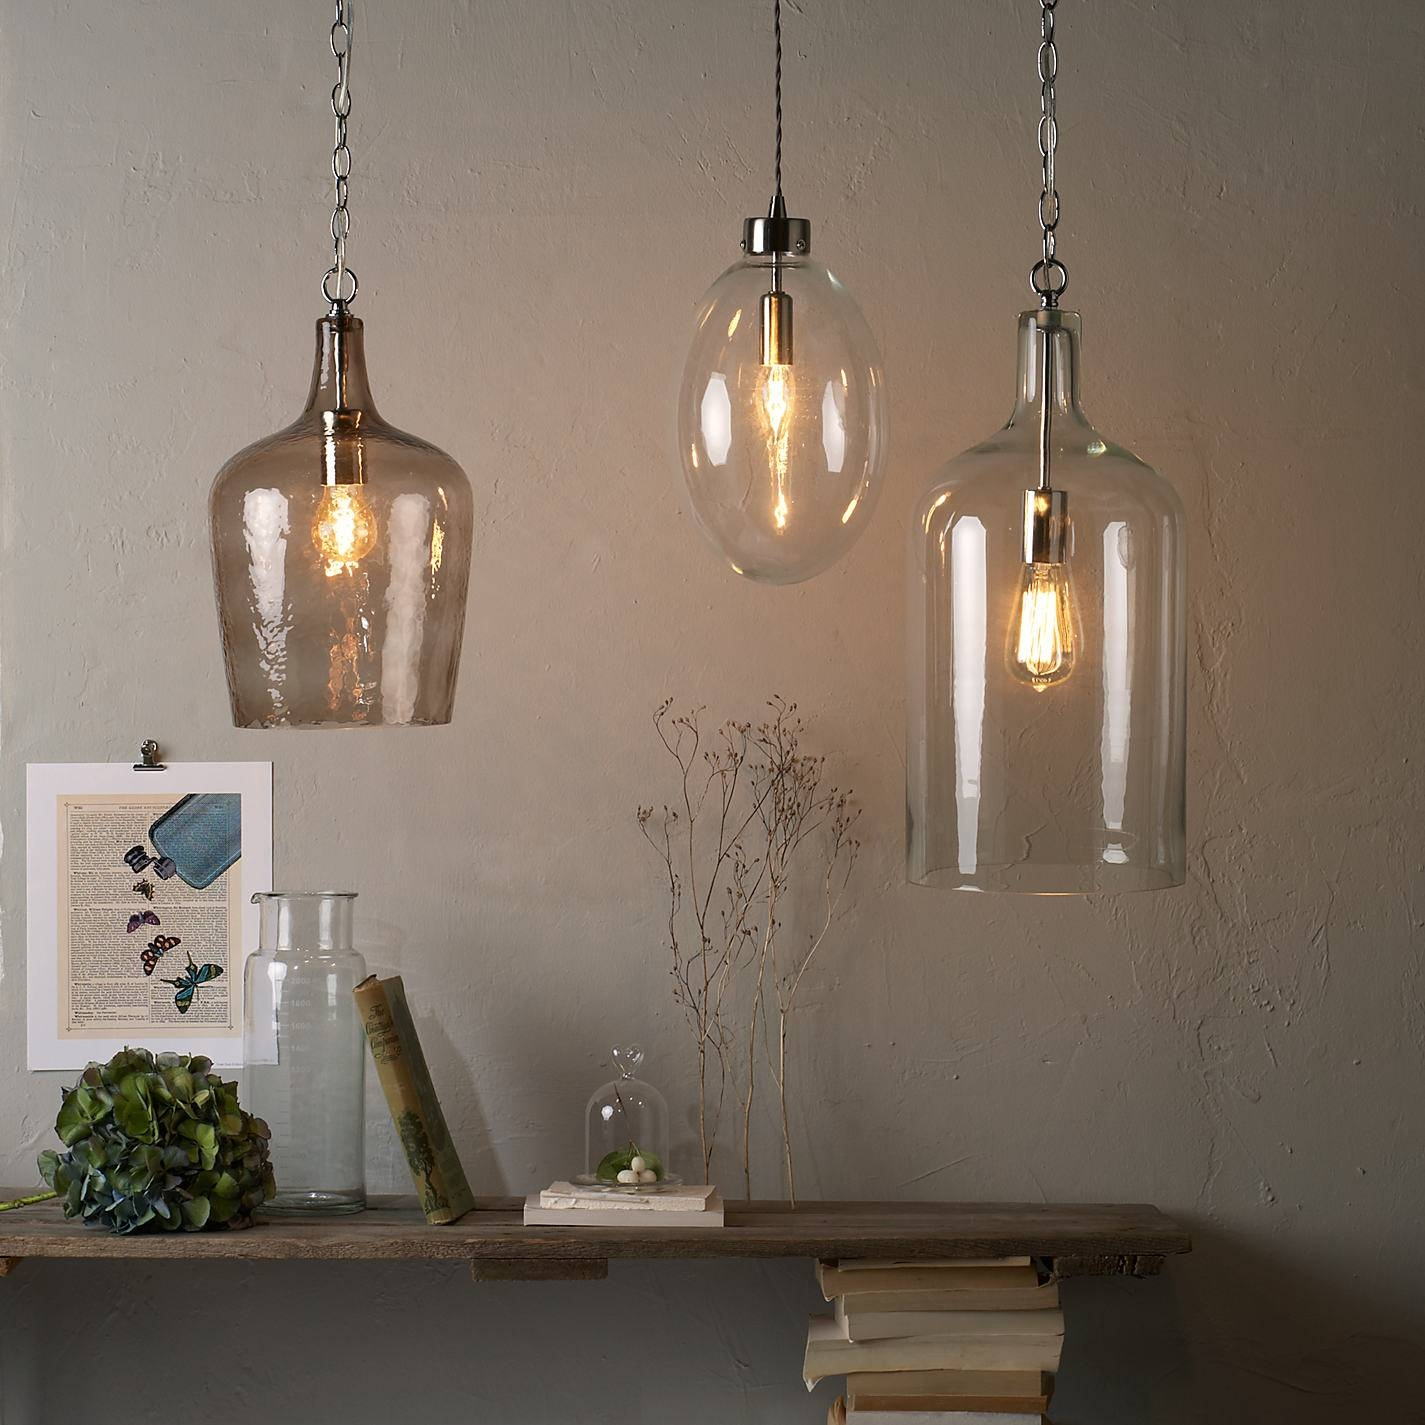 Instant Pendant Lights - Baby-Exit with Instant Pendants (Image 8 of 15)